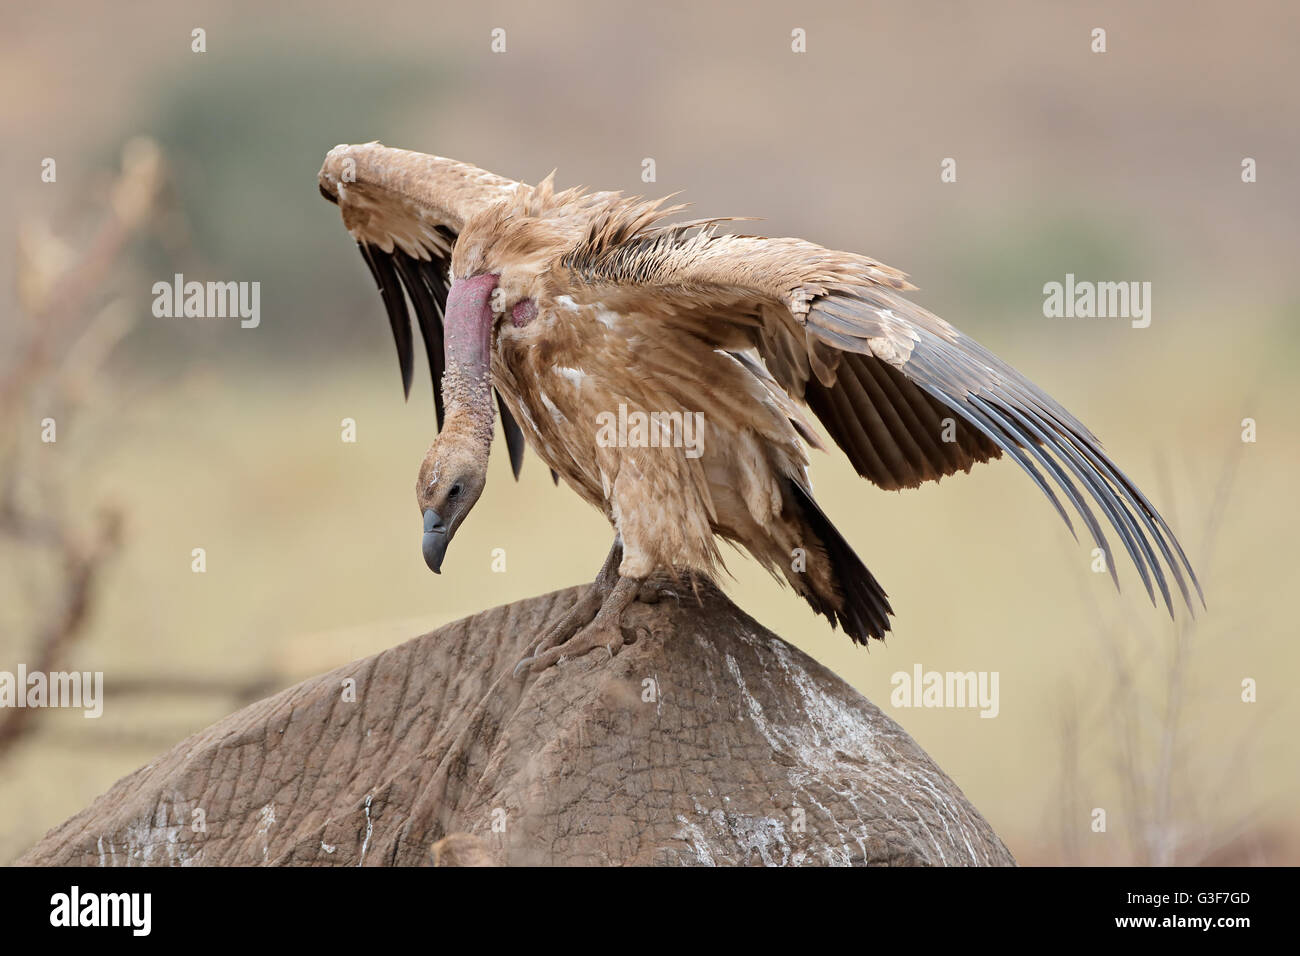 White-backed vulture (Gyps africanus) scavenging on a dead elephant, Kruger National Park, South Africa - Stock Image